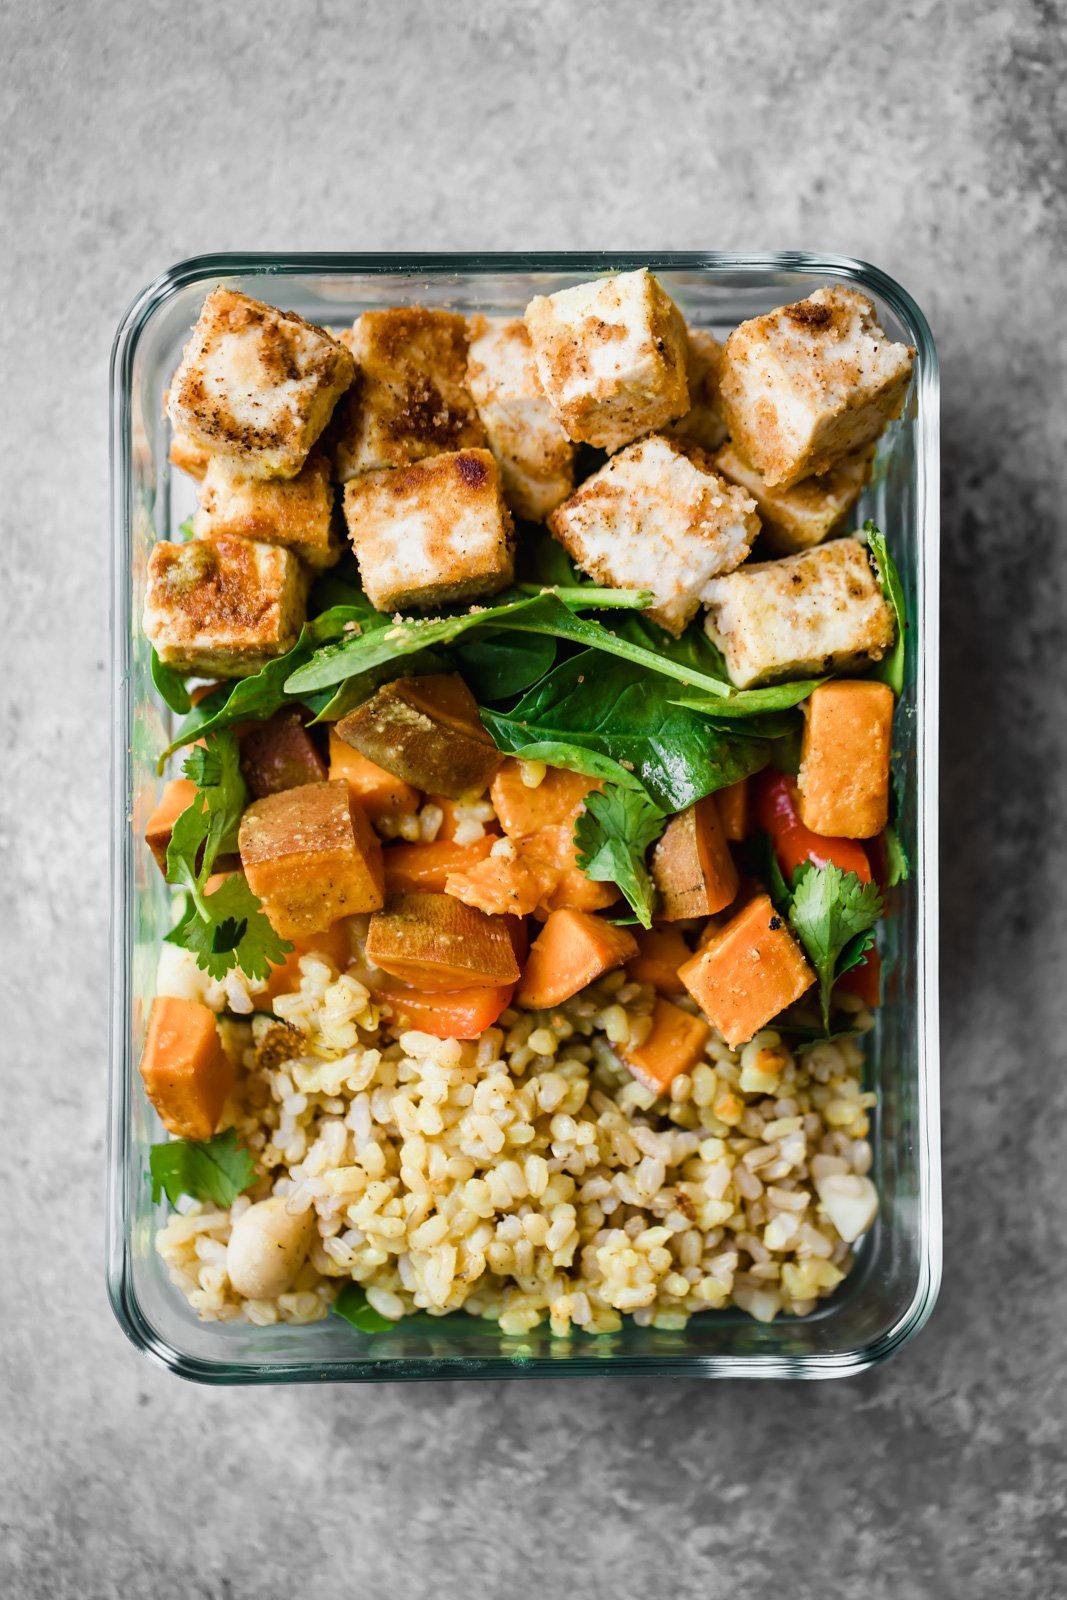 Vegan tofu bowls in a glass meal prep container